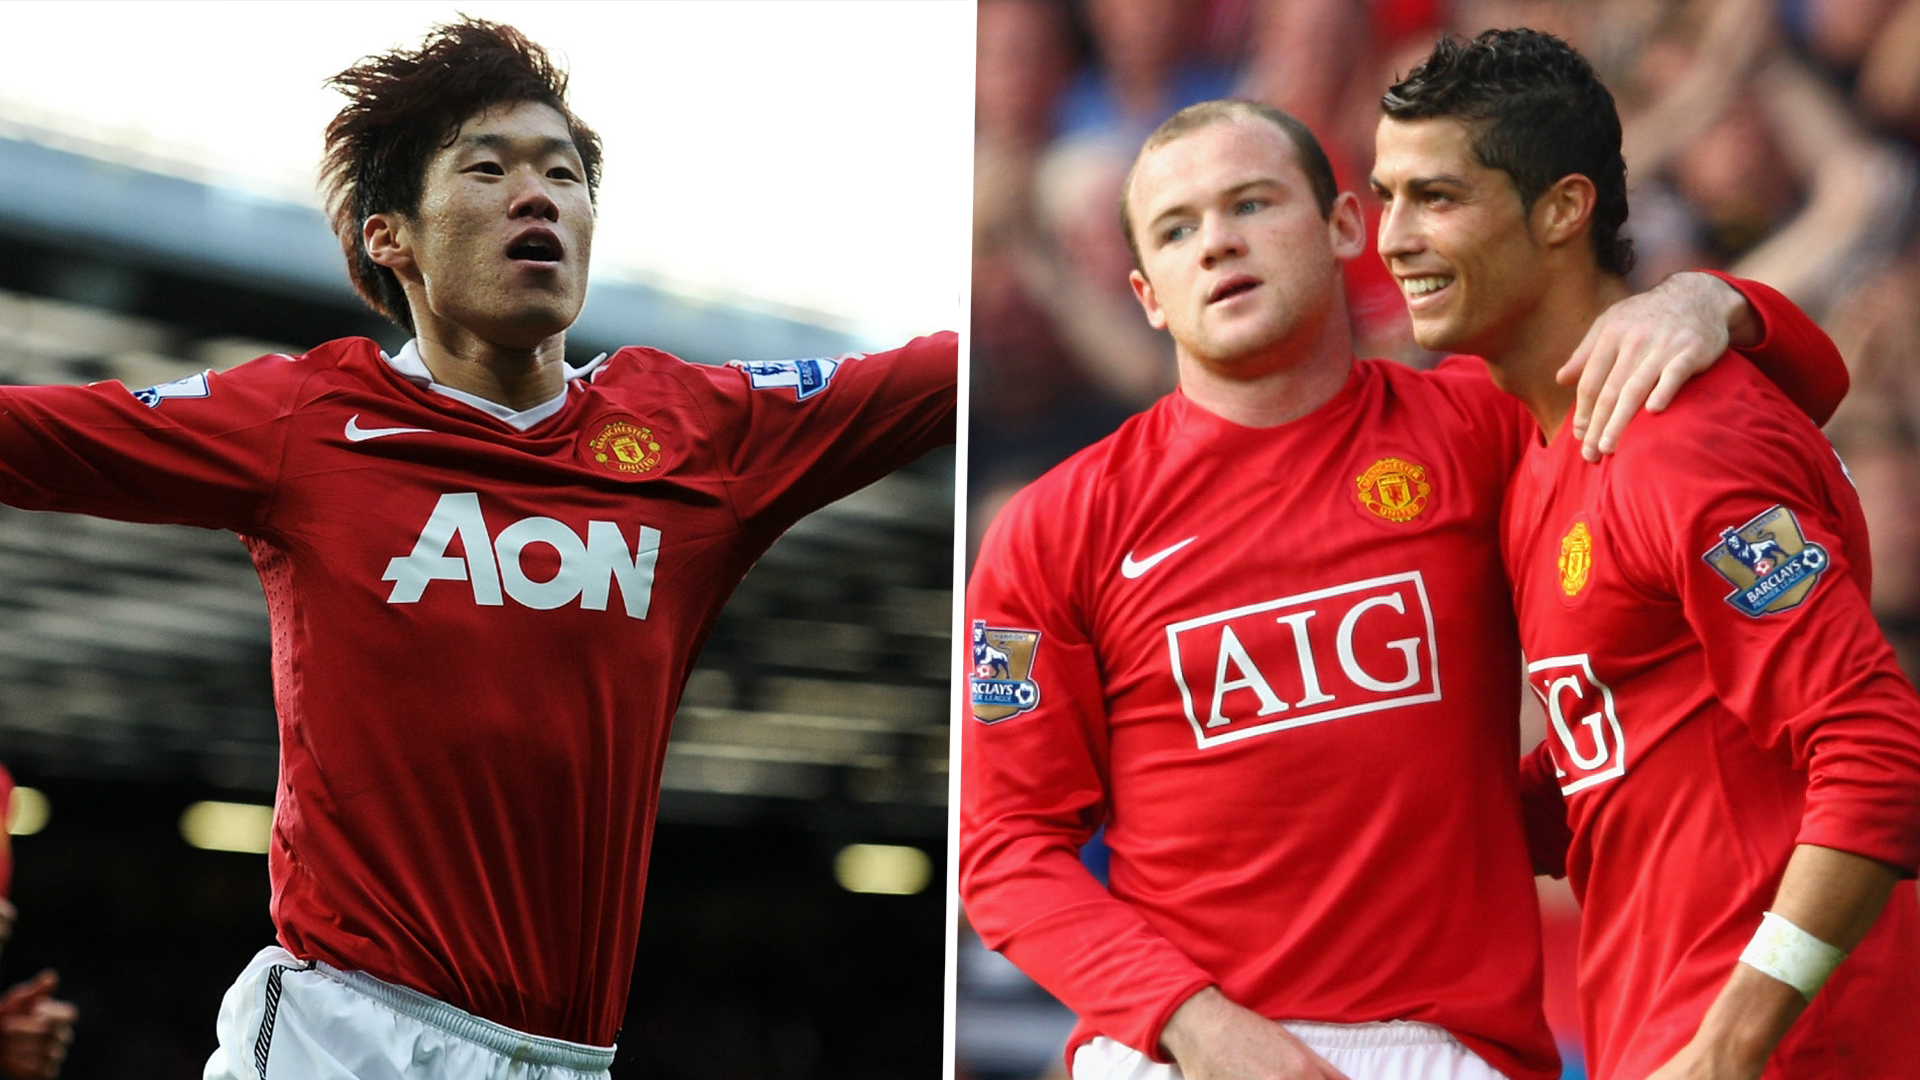 Park just as important to Man Utd as Cristiano Ronaldo, Rooney claims